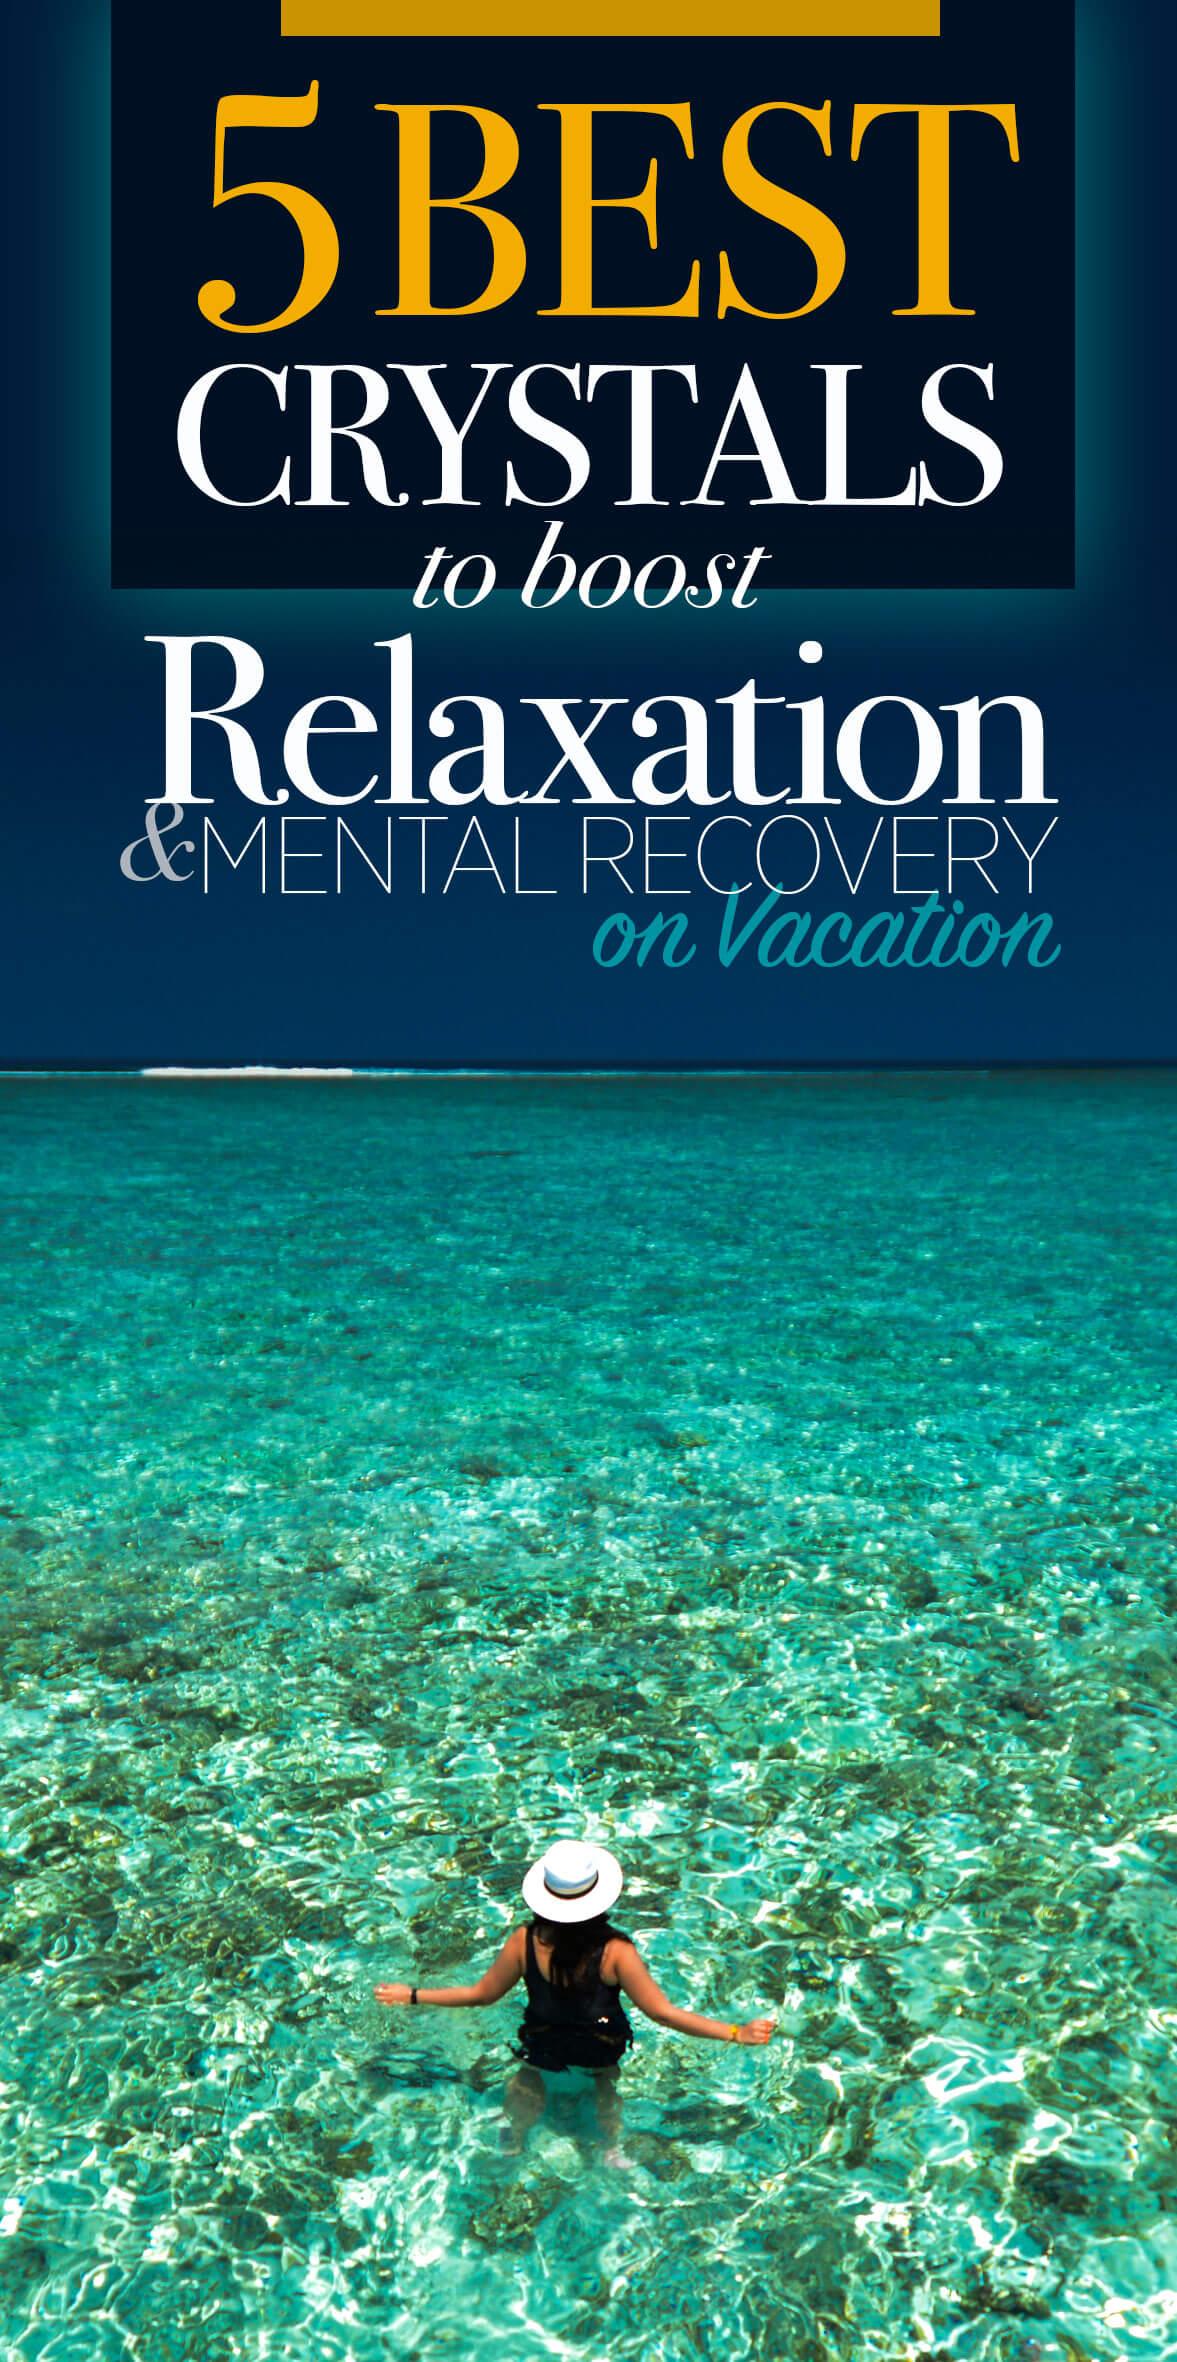 best crystals for melt stress and anxiety on vacation